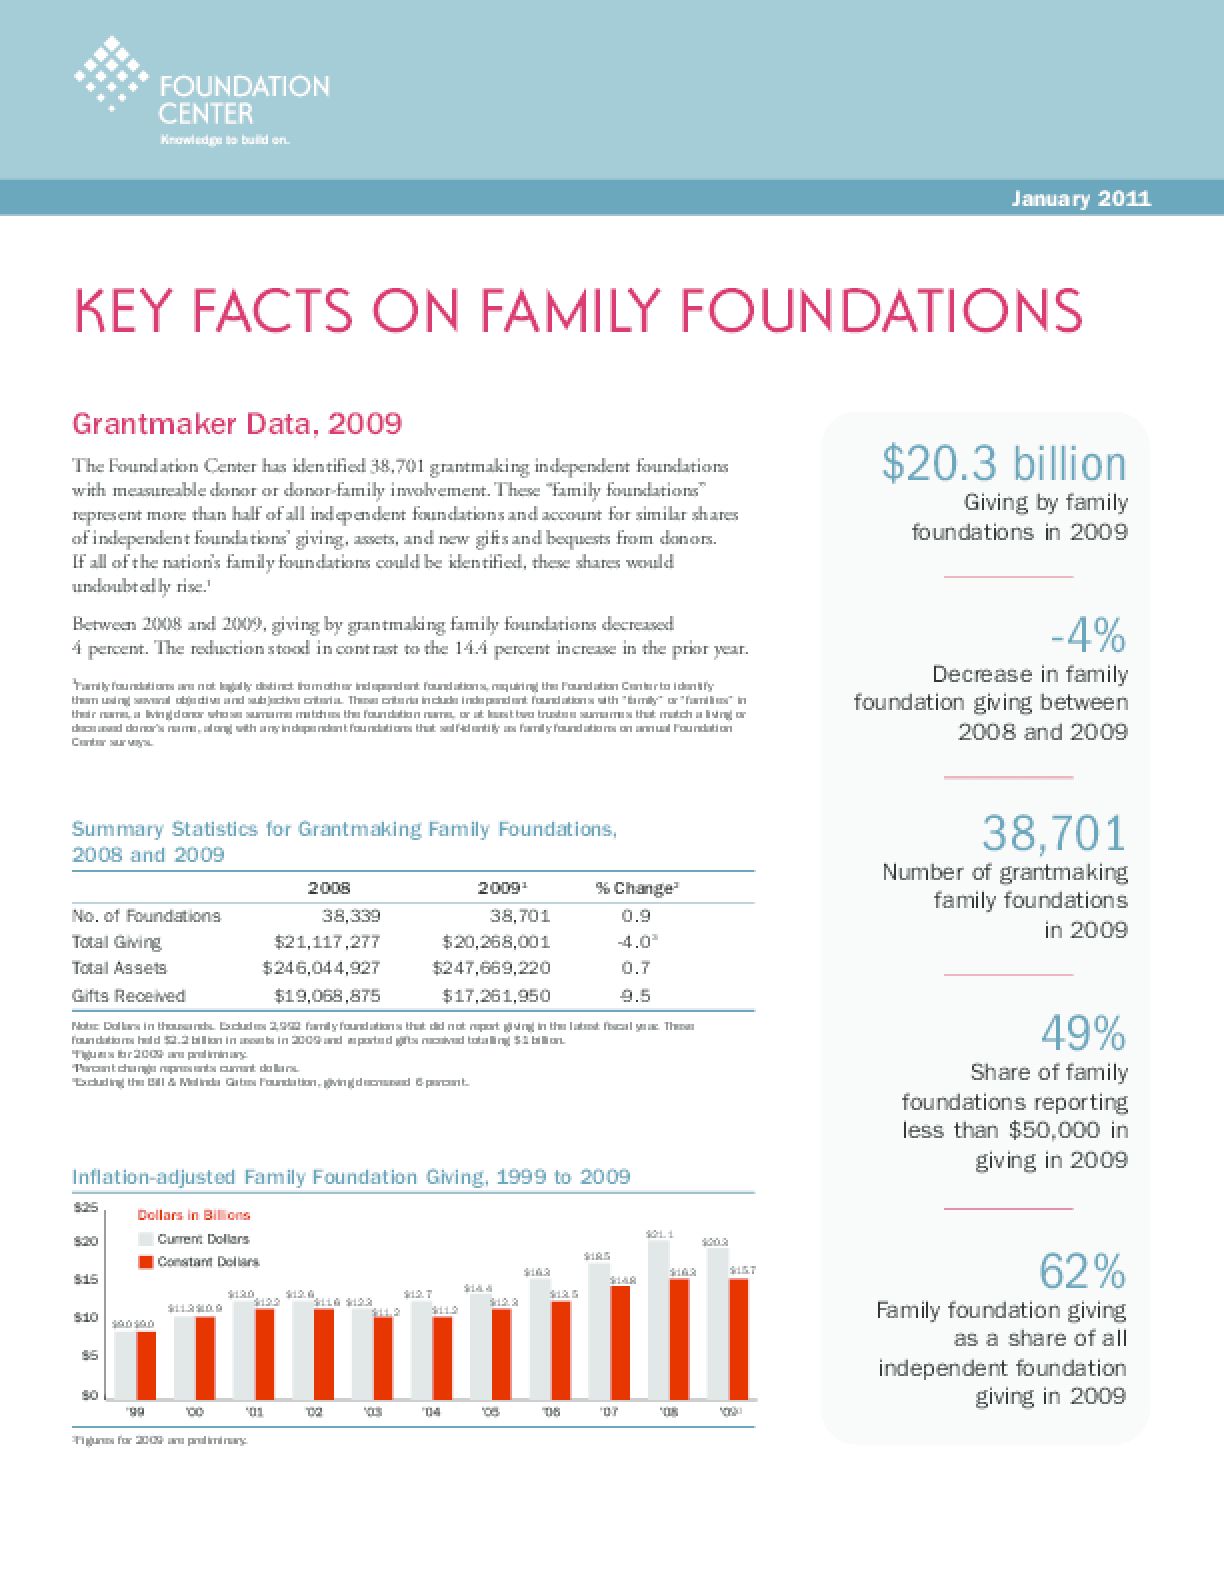 Key Facts on Family Foundations 2011